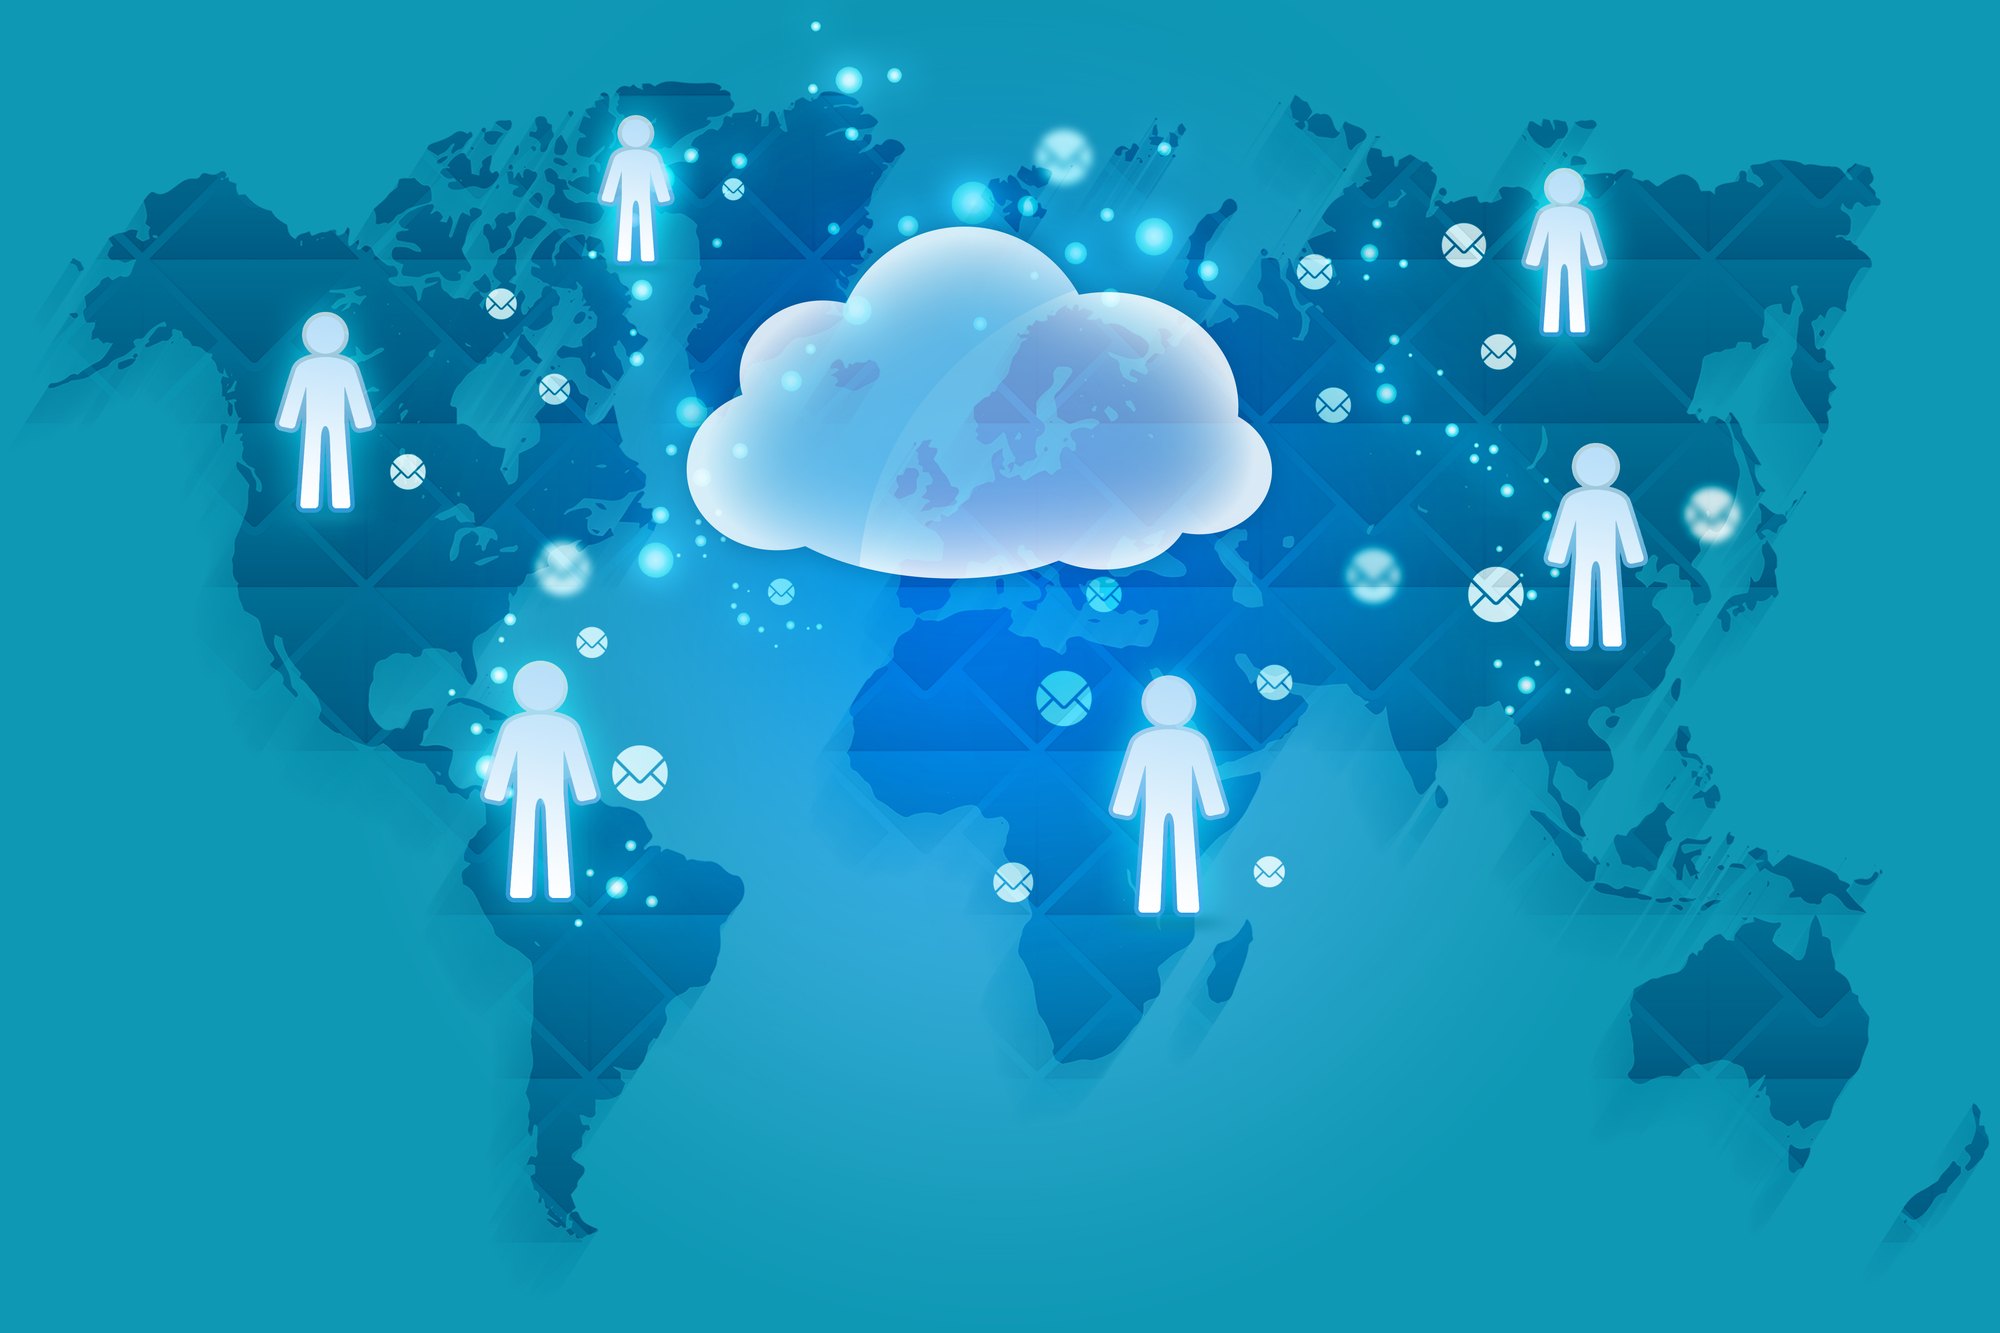 Storing content in the cloud